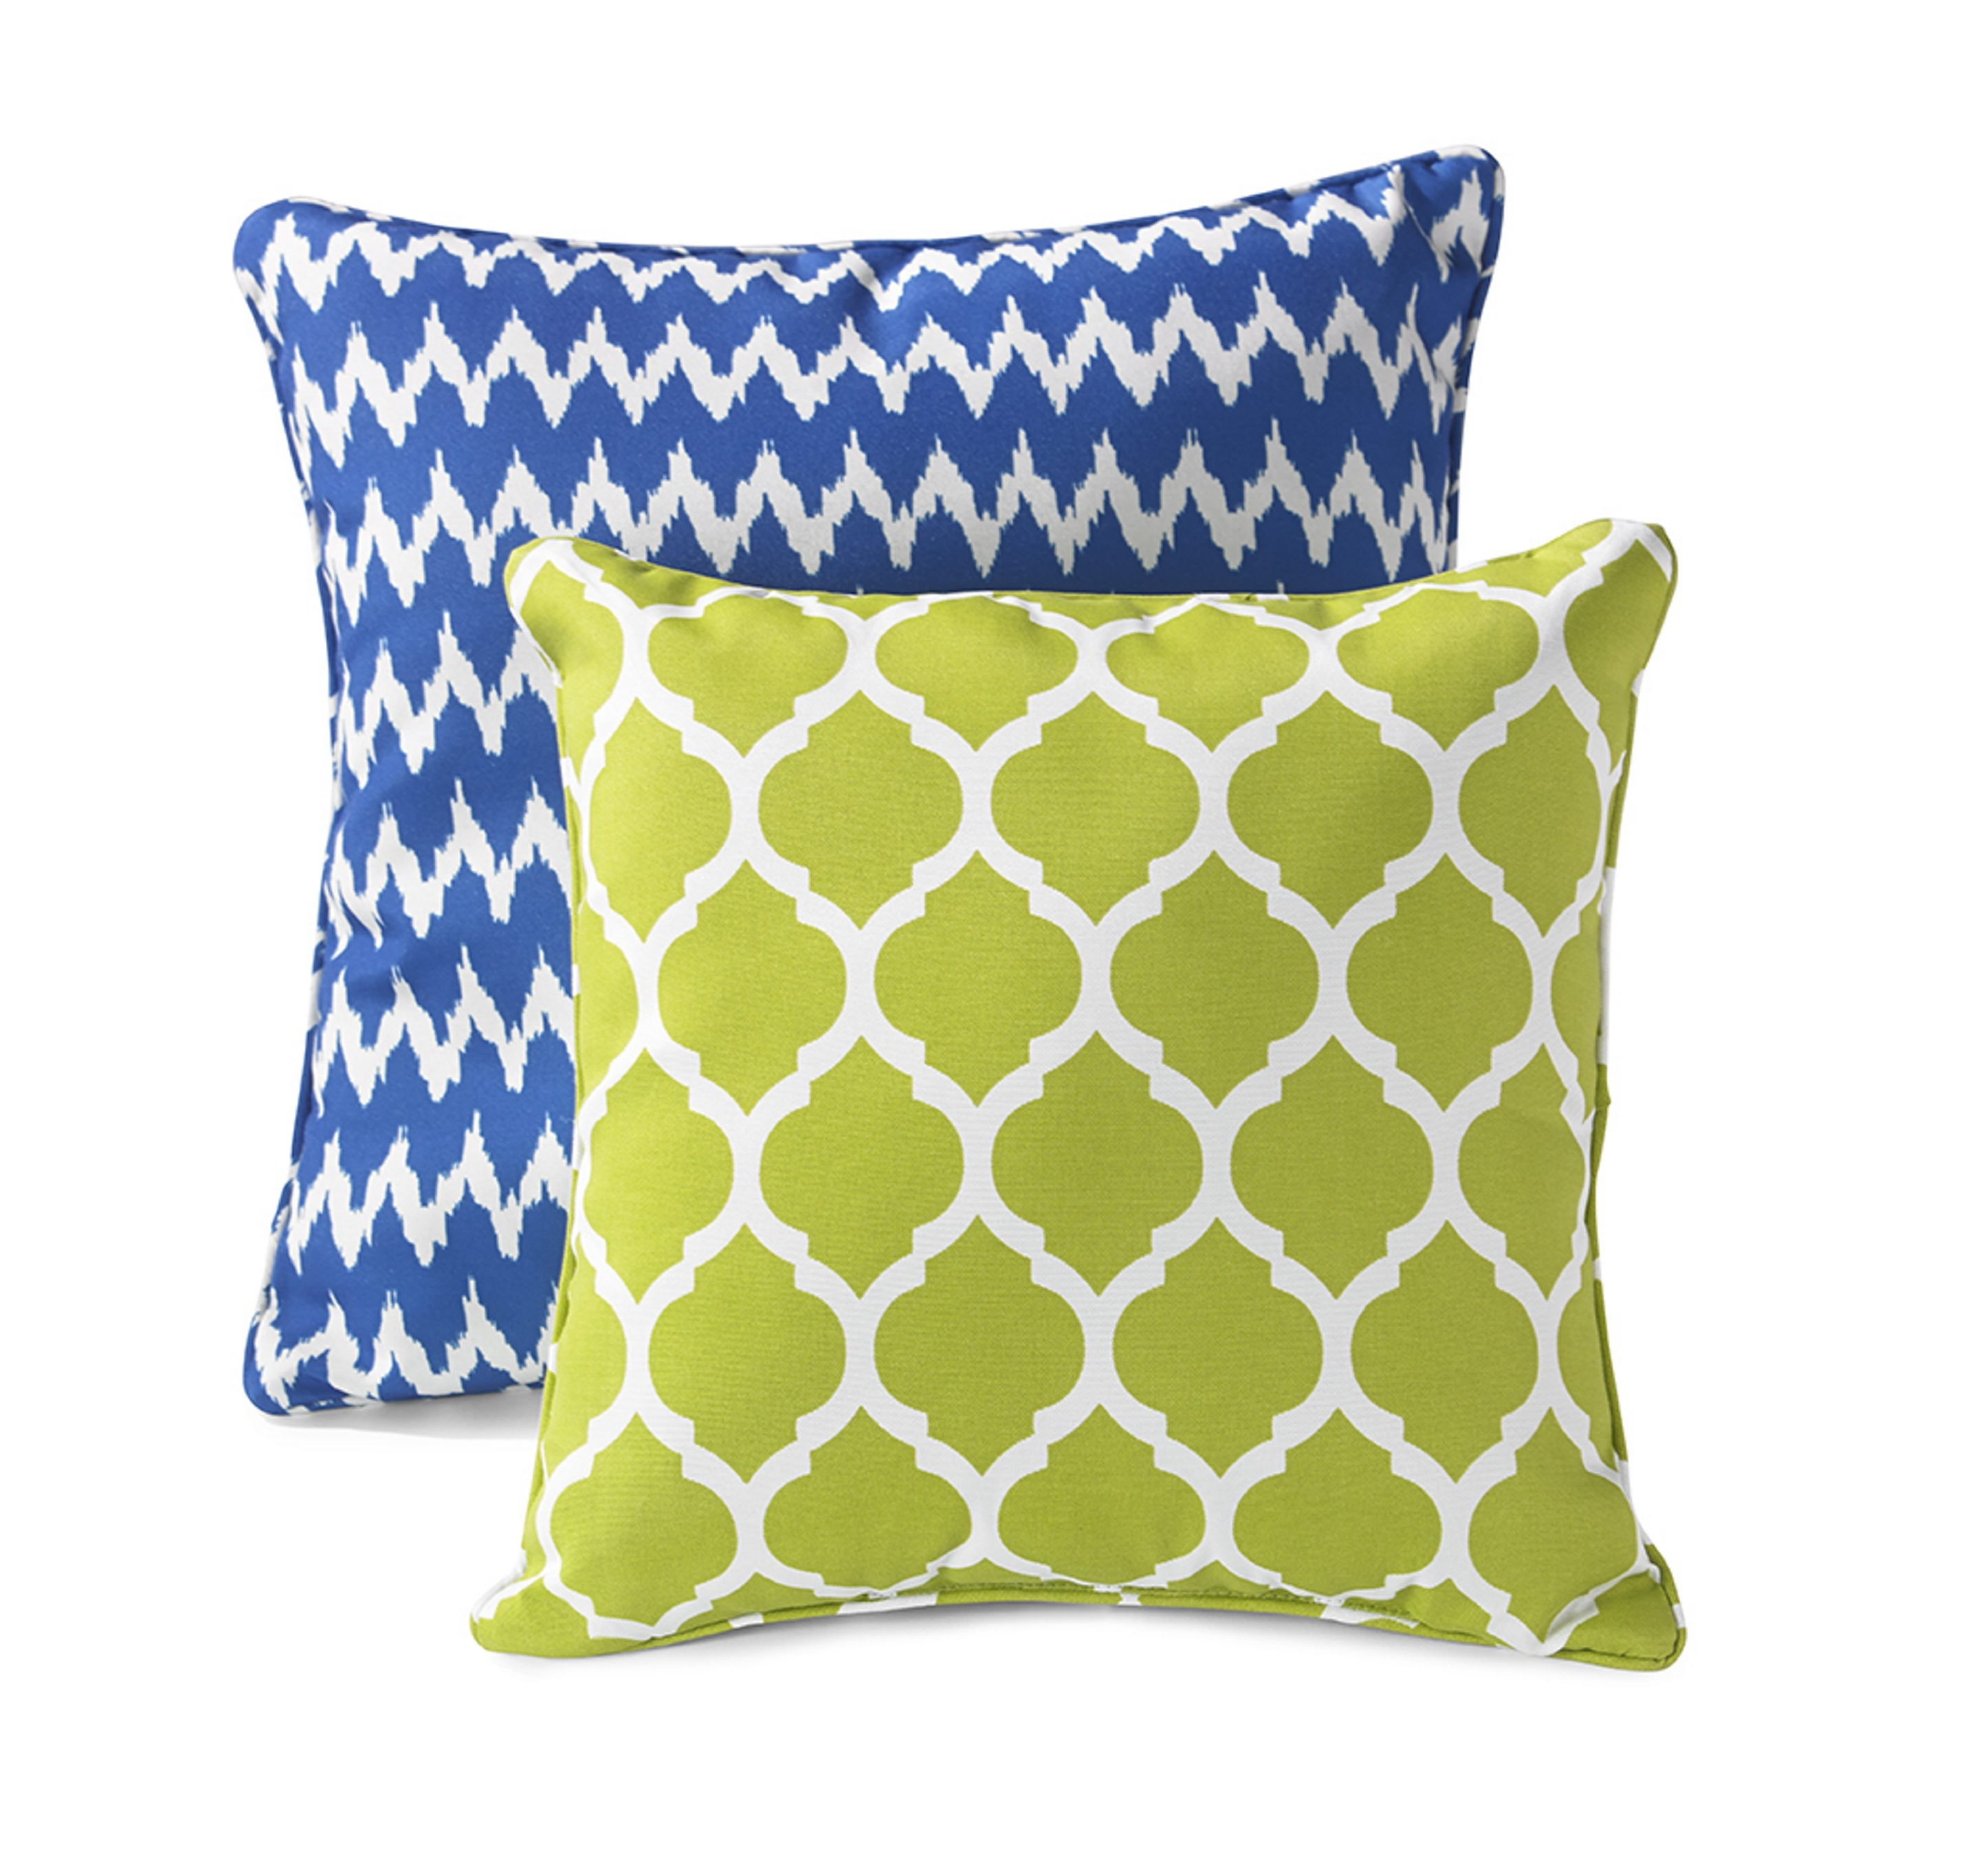 IT'S A TOSSUP: Left, accent pillows, such as these from HomeGoods, are just what a boring rooms needs. Right, 3M   Command™ Timeless Hook in Brushed Nickel.